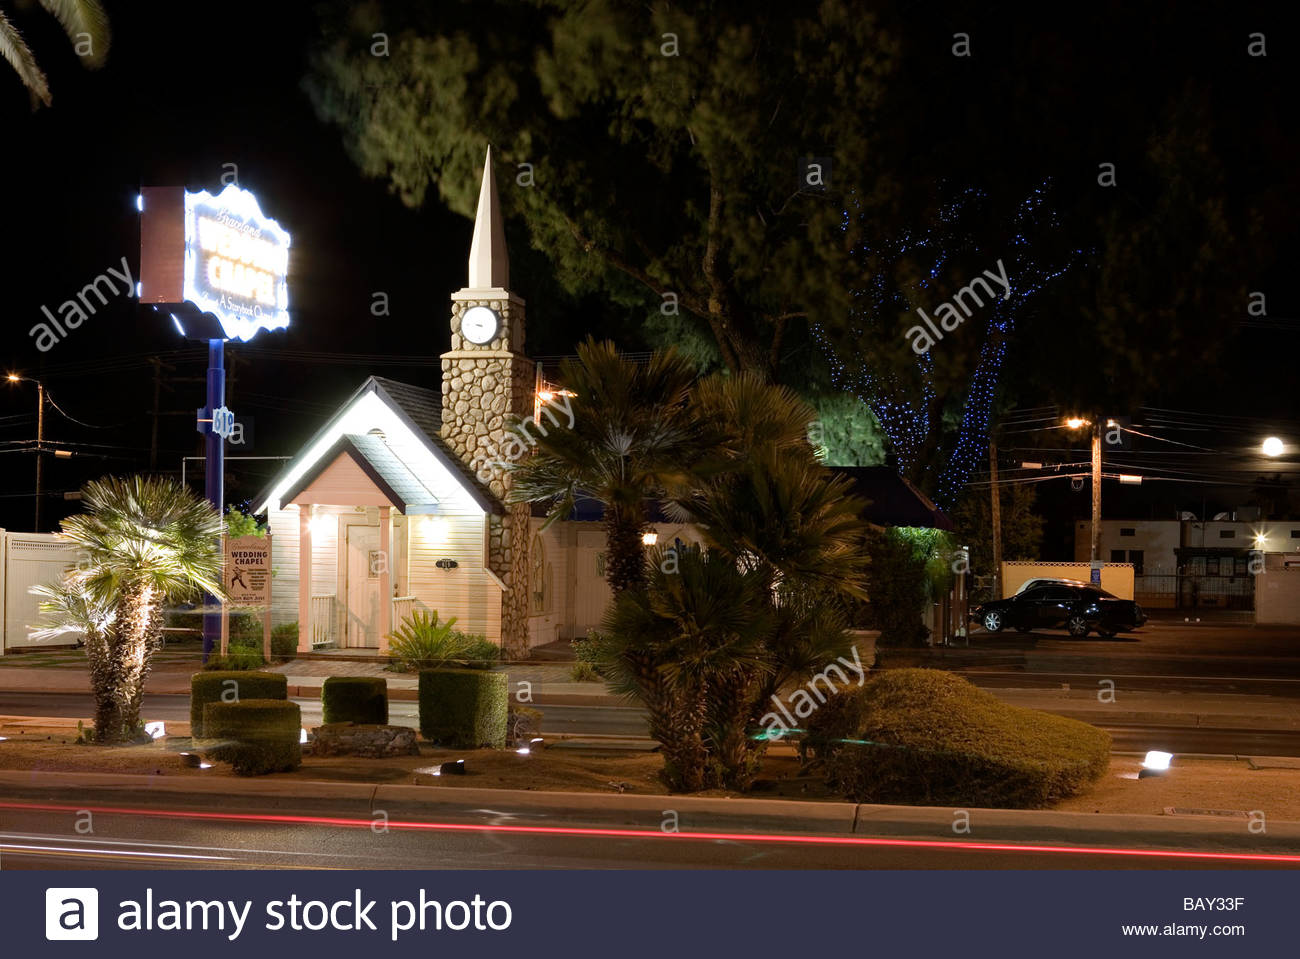 Las Vegas Boulevard The Strip Graceland Wedding Chapel Downtown Nevada USA